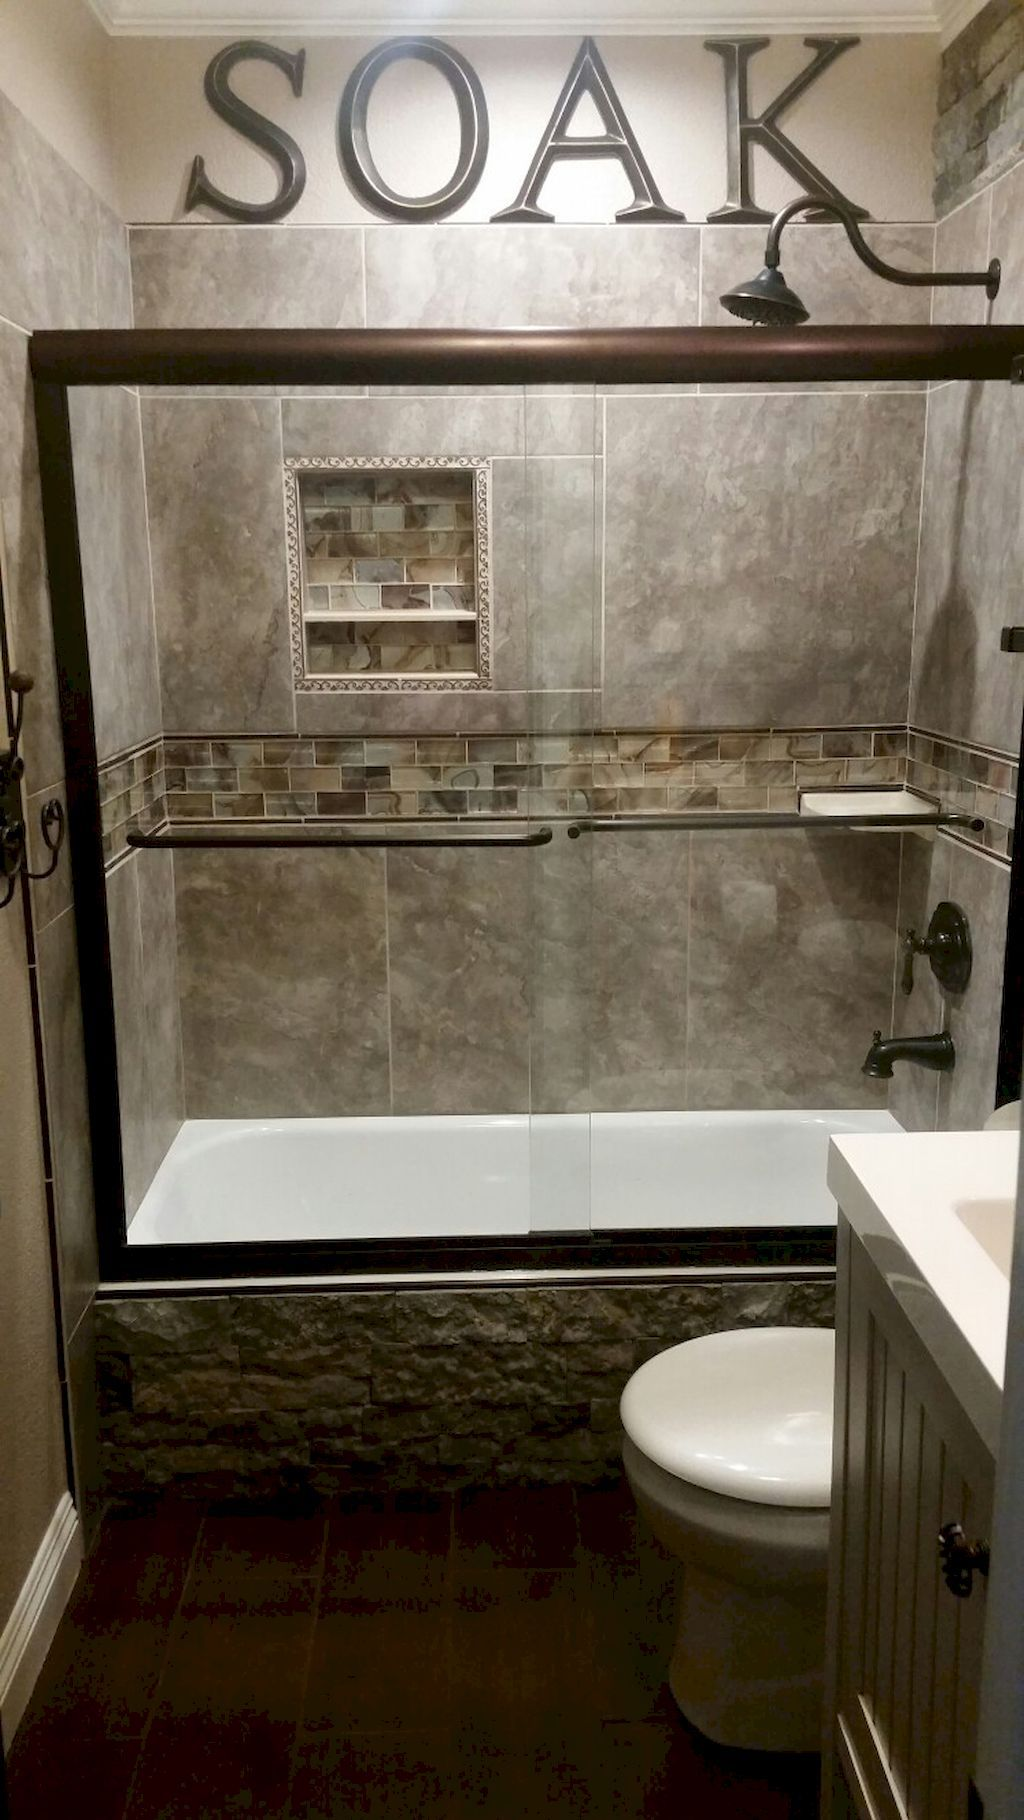 remodeled bathrooms gorgeous 55 cool small master bathroom remodel ideas  https://homeastern.com/2017/06/23/55-cool-small-master-bathroom-remodel -ideas/ BWAPYJK